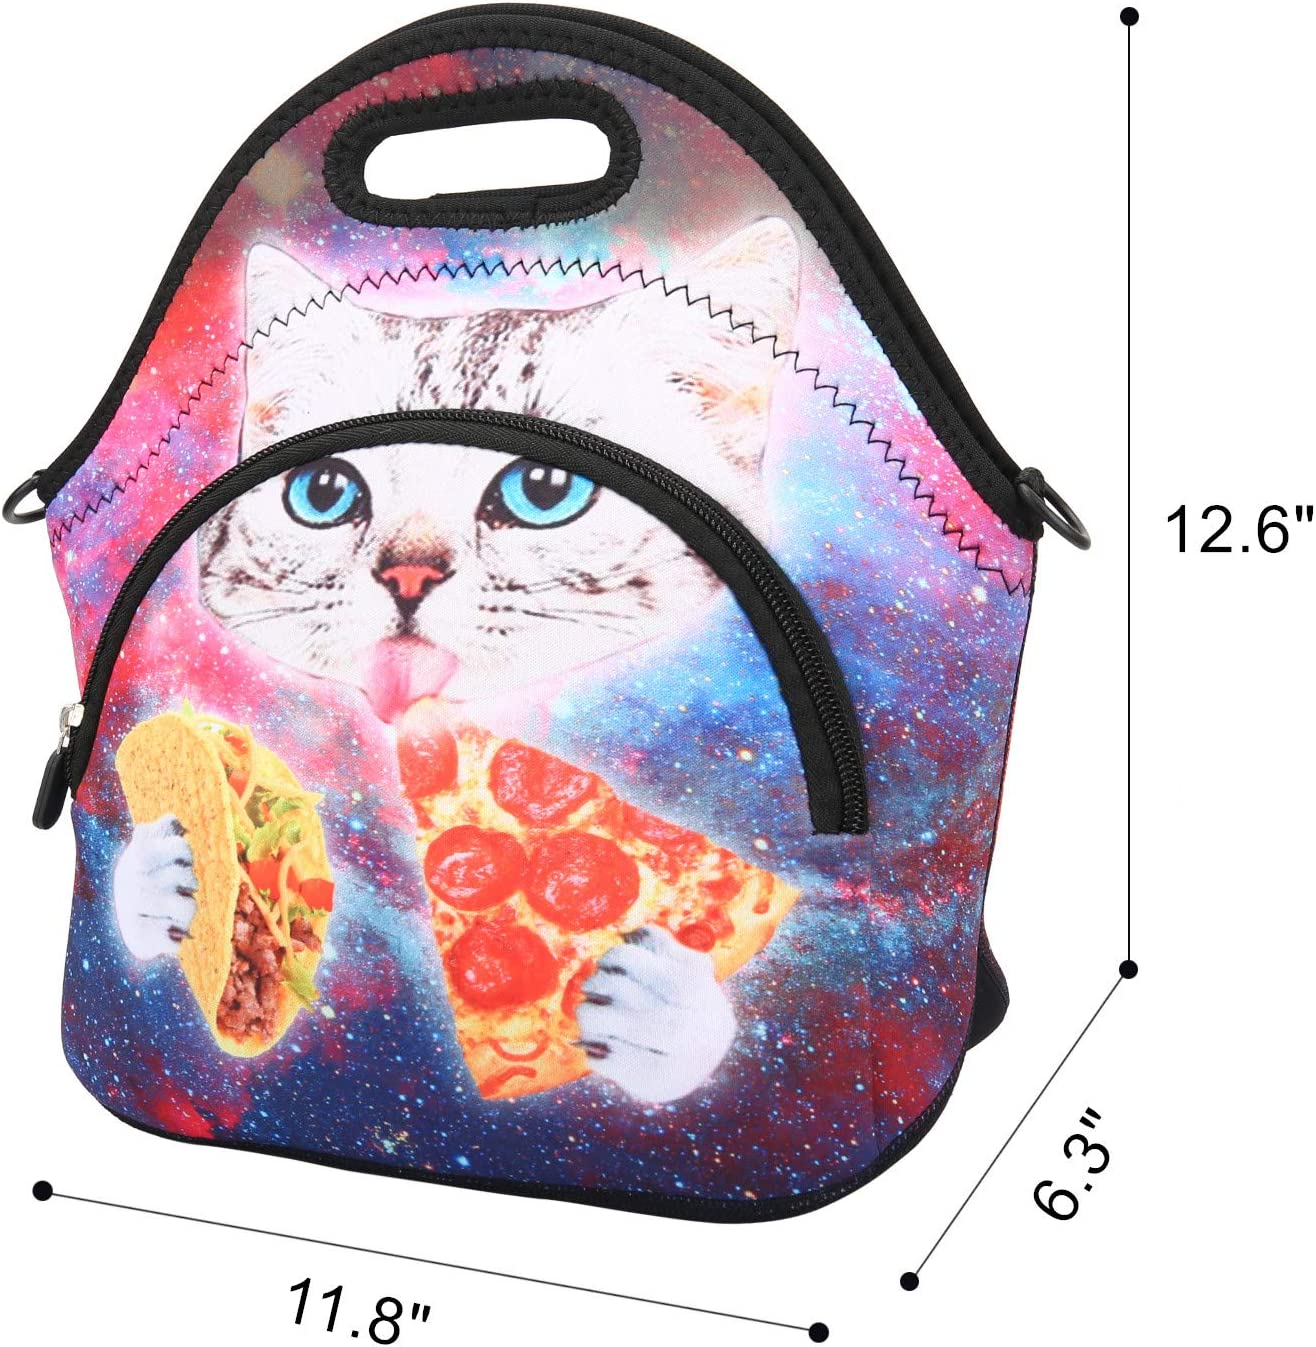 Violet Mist Neoprene Lunch Bag Tote with Pocket Shoulder Strap Insulated Thermal Lunch Box Tote Waterproof Pinic Work for Women Gilrs Men Adults Teens(Blue Car)